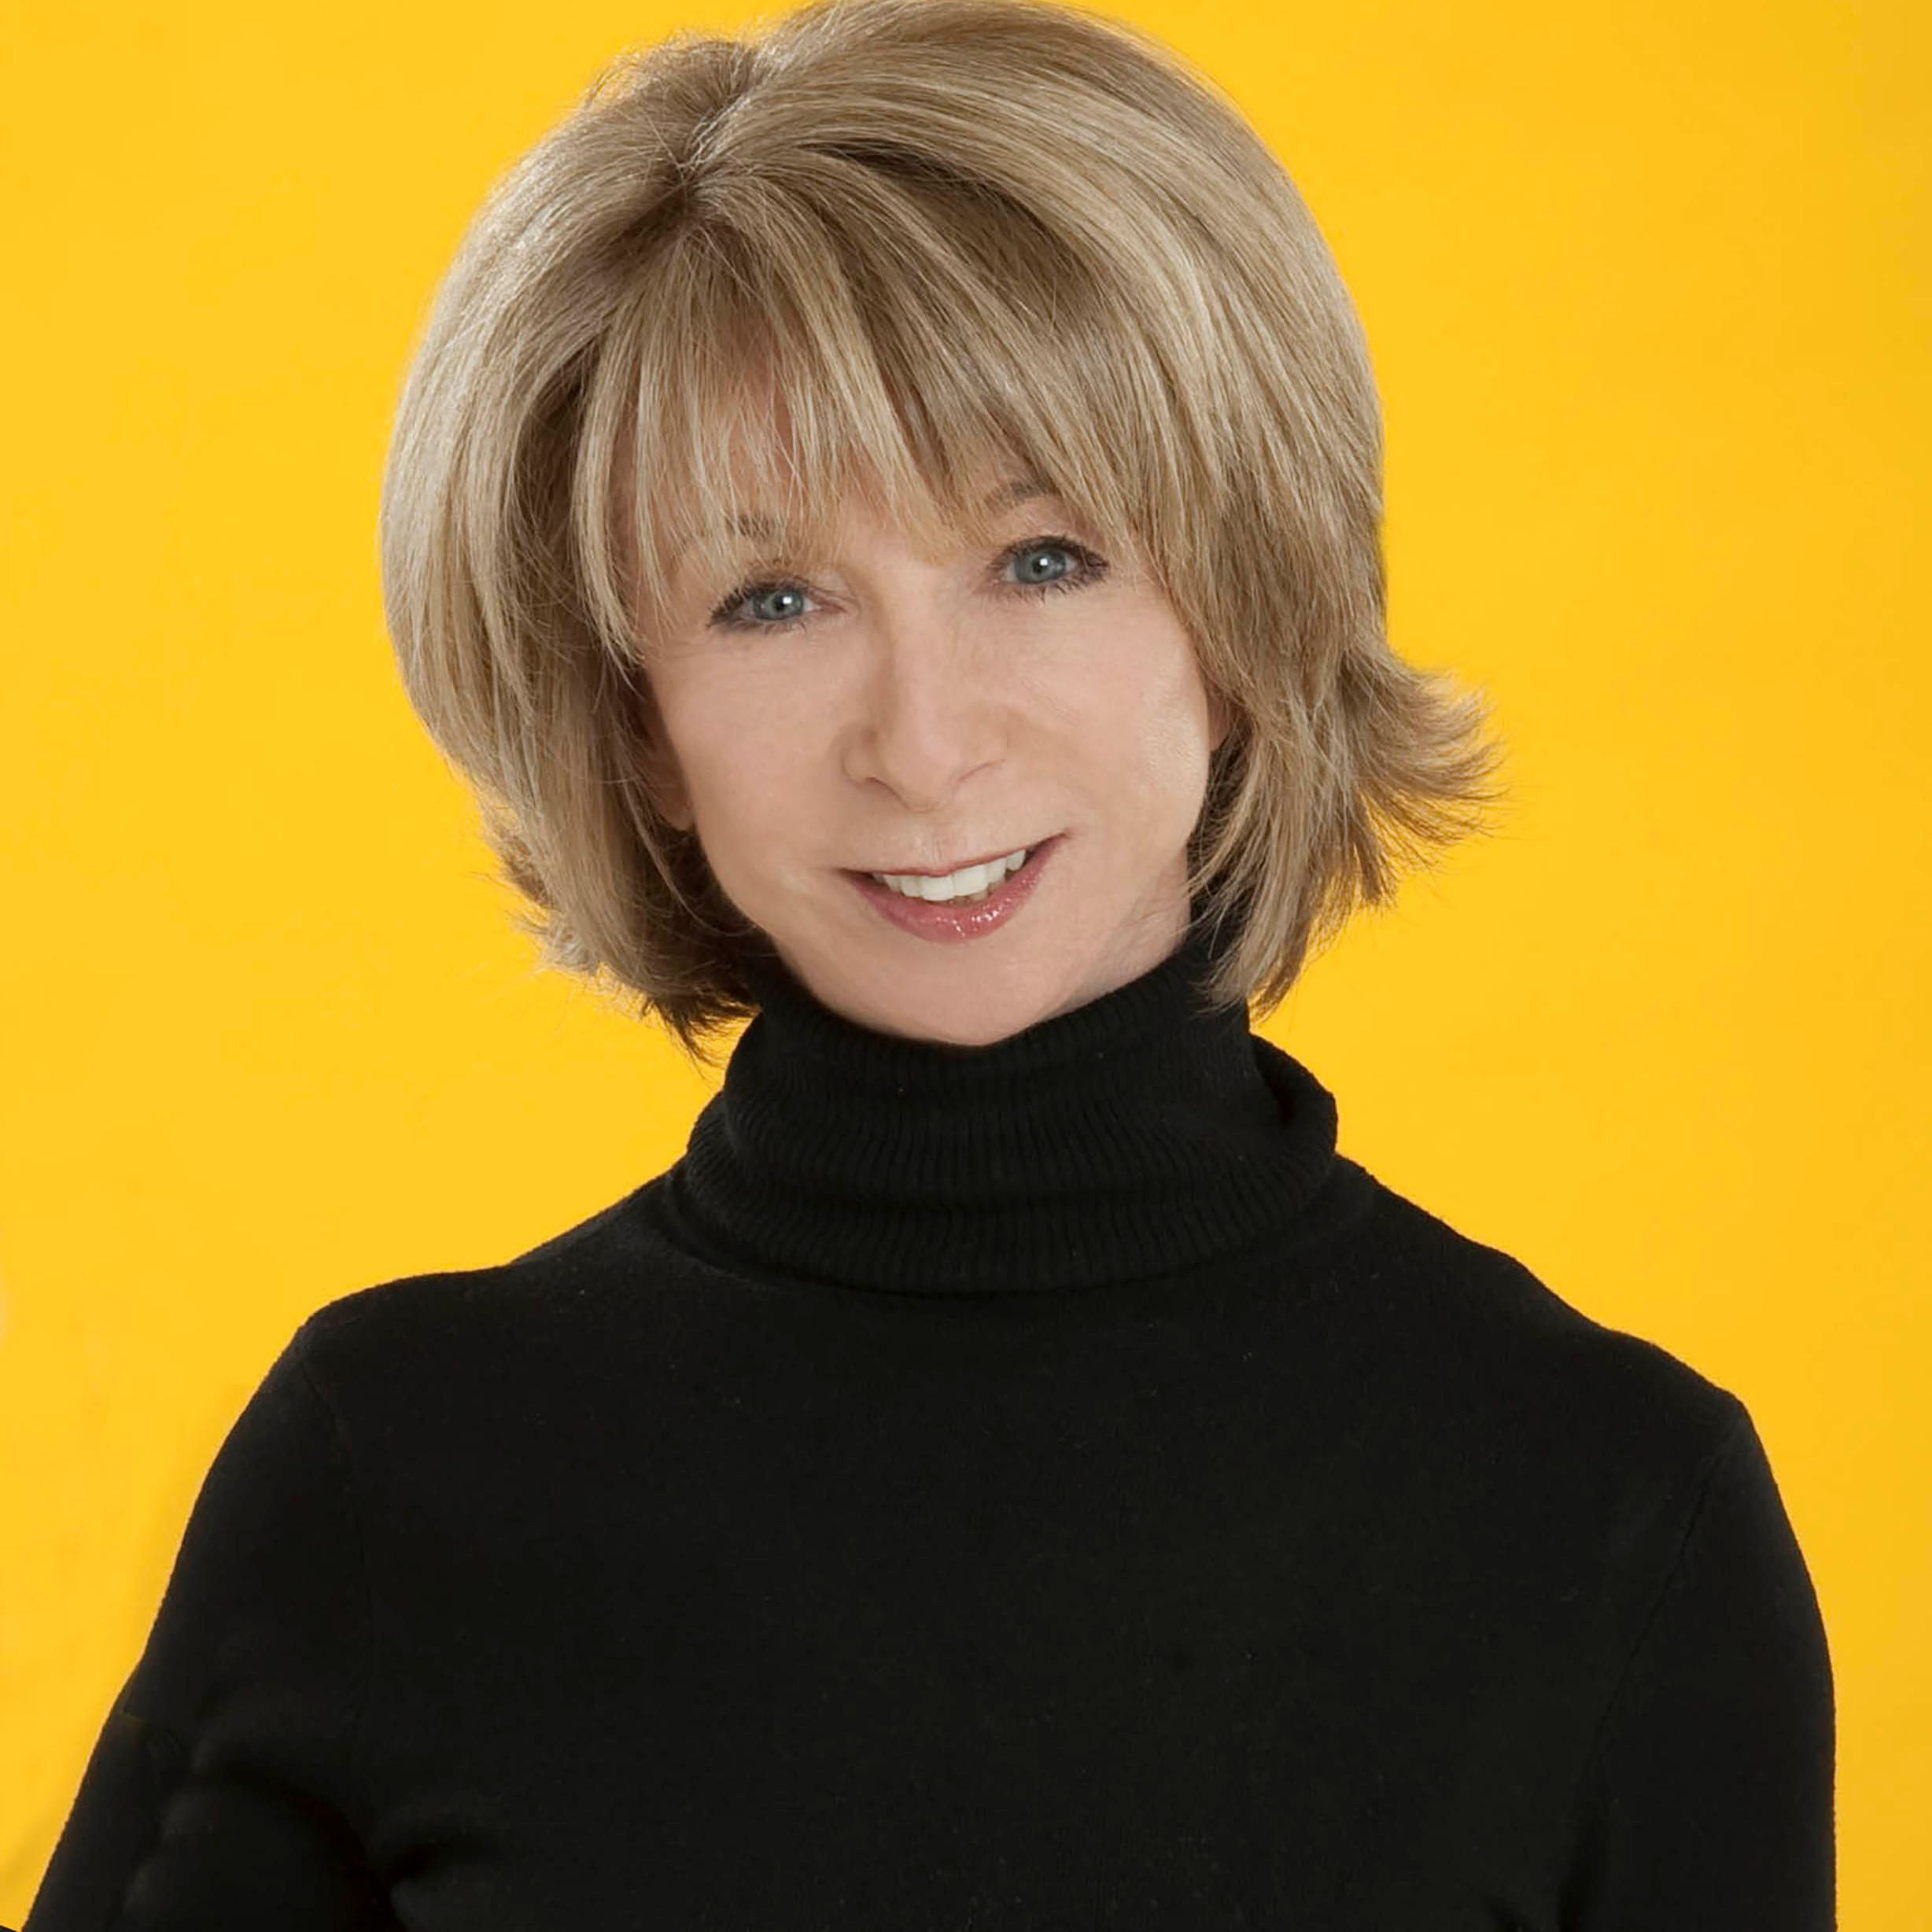 Coronation Street reveals more spoilers for Gail Rodwell's return storyline